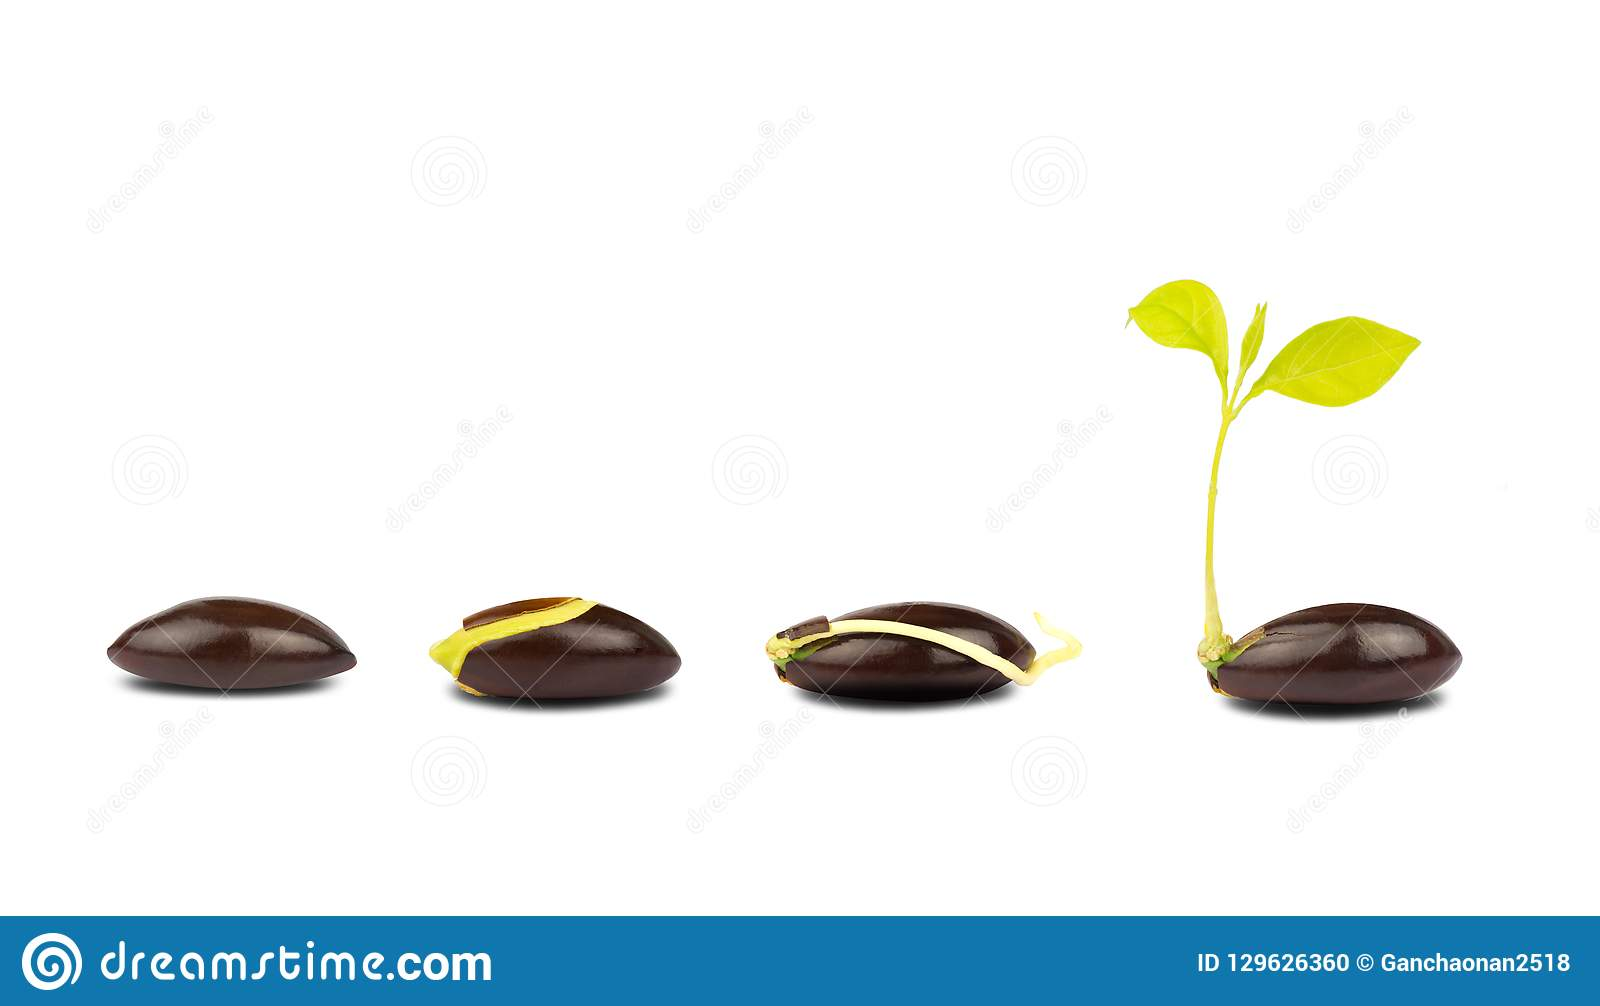 Seed germination process isolate on white background.